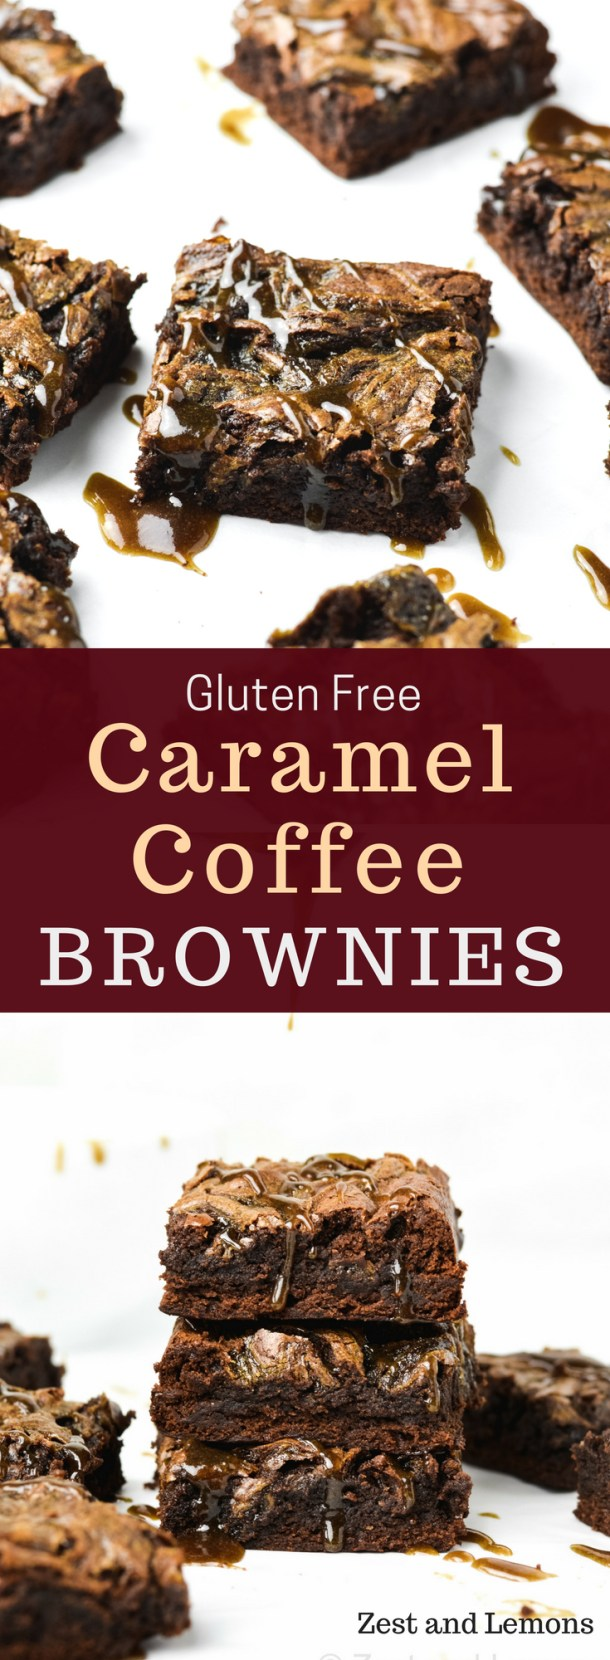 Caramel coffee gluten free brownies. Made with homemade coffee caramel that's swirled into these fudgy chocolate brownies - Zest and Lemons #glutenfree #caramelbrownies